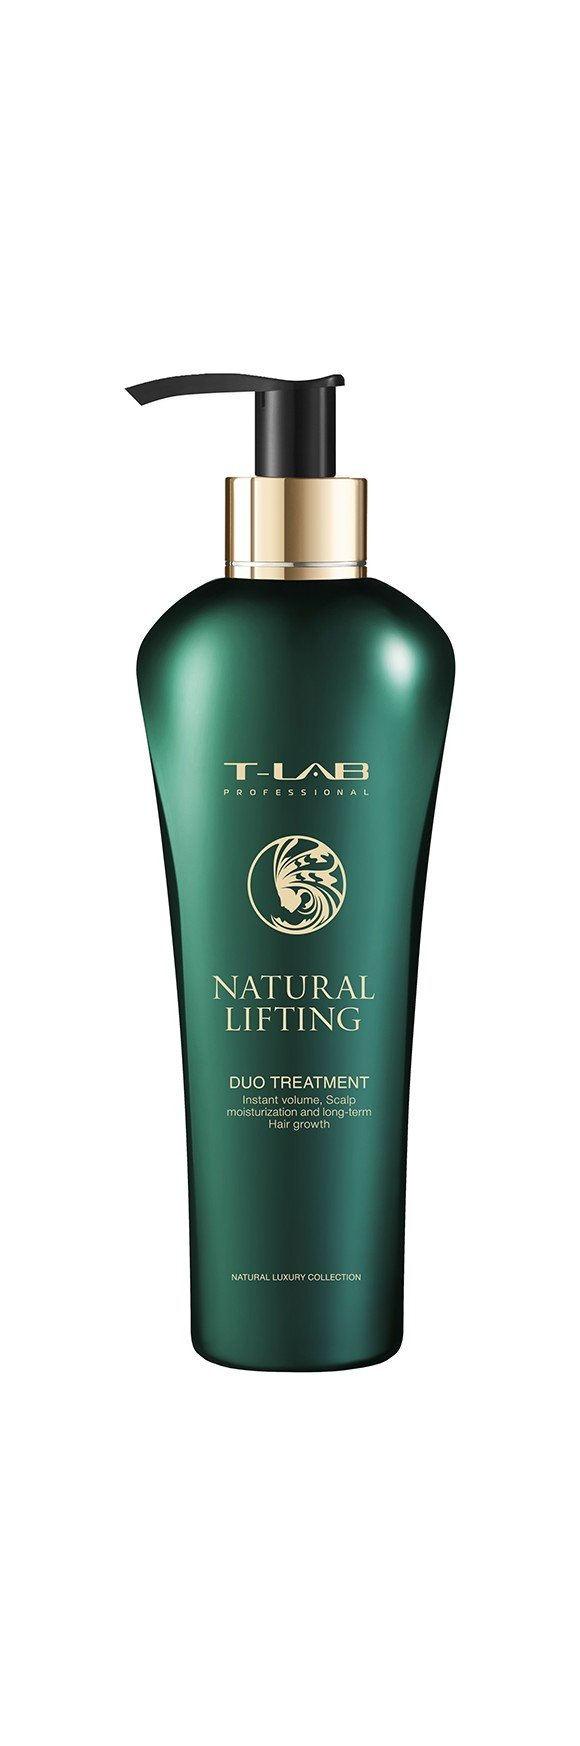 T-Lab Professional - Nautral Lifting Duo Treatment 300 ml